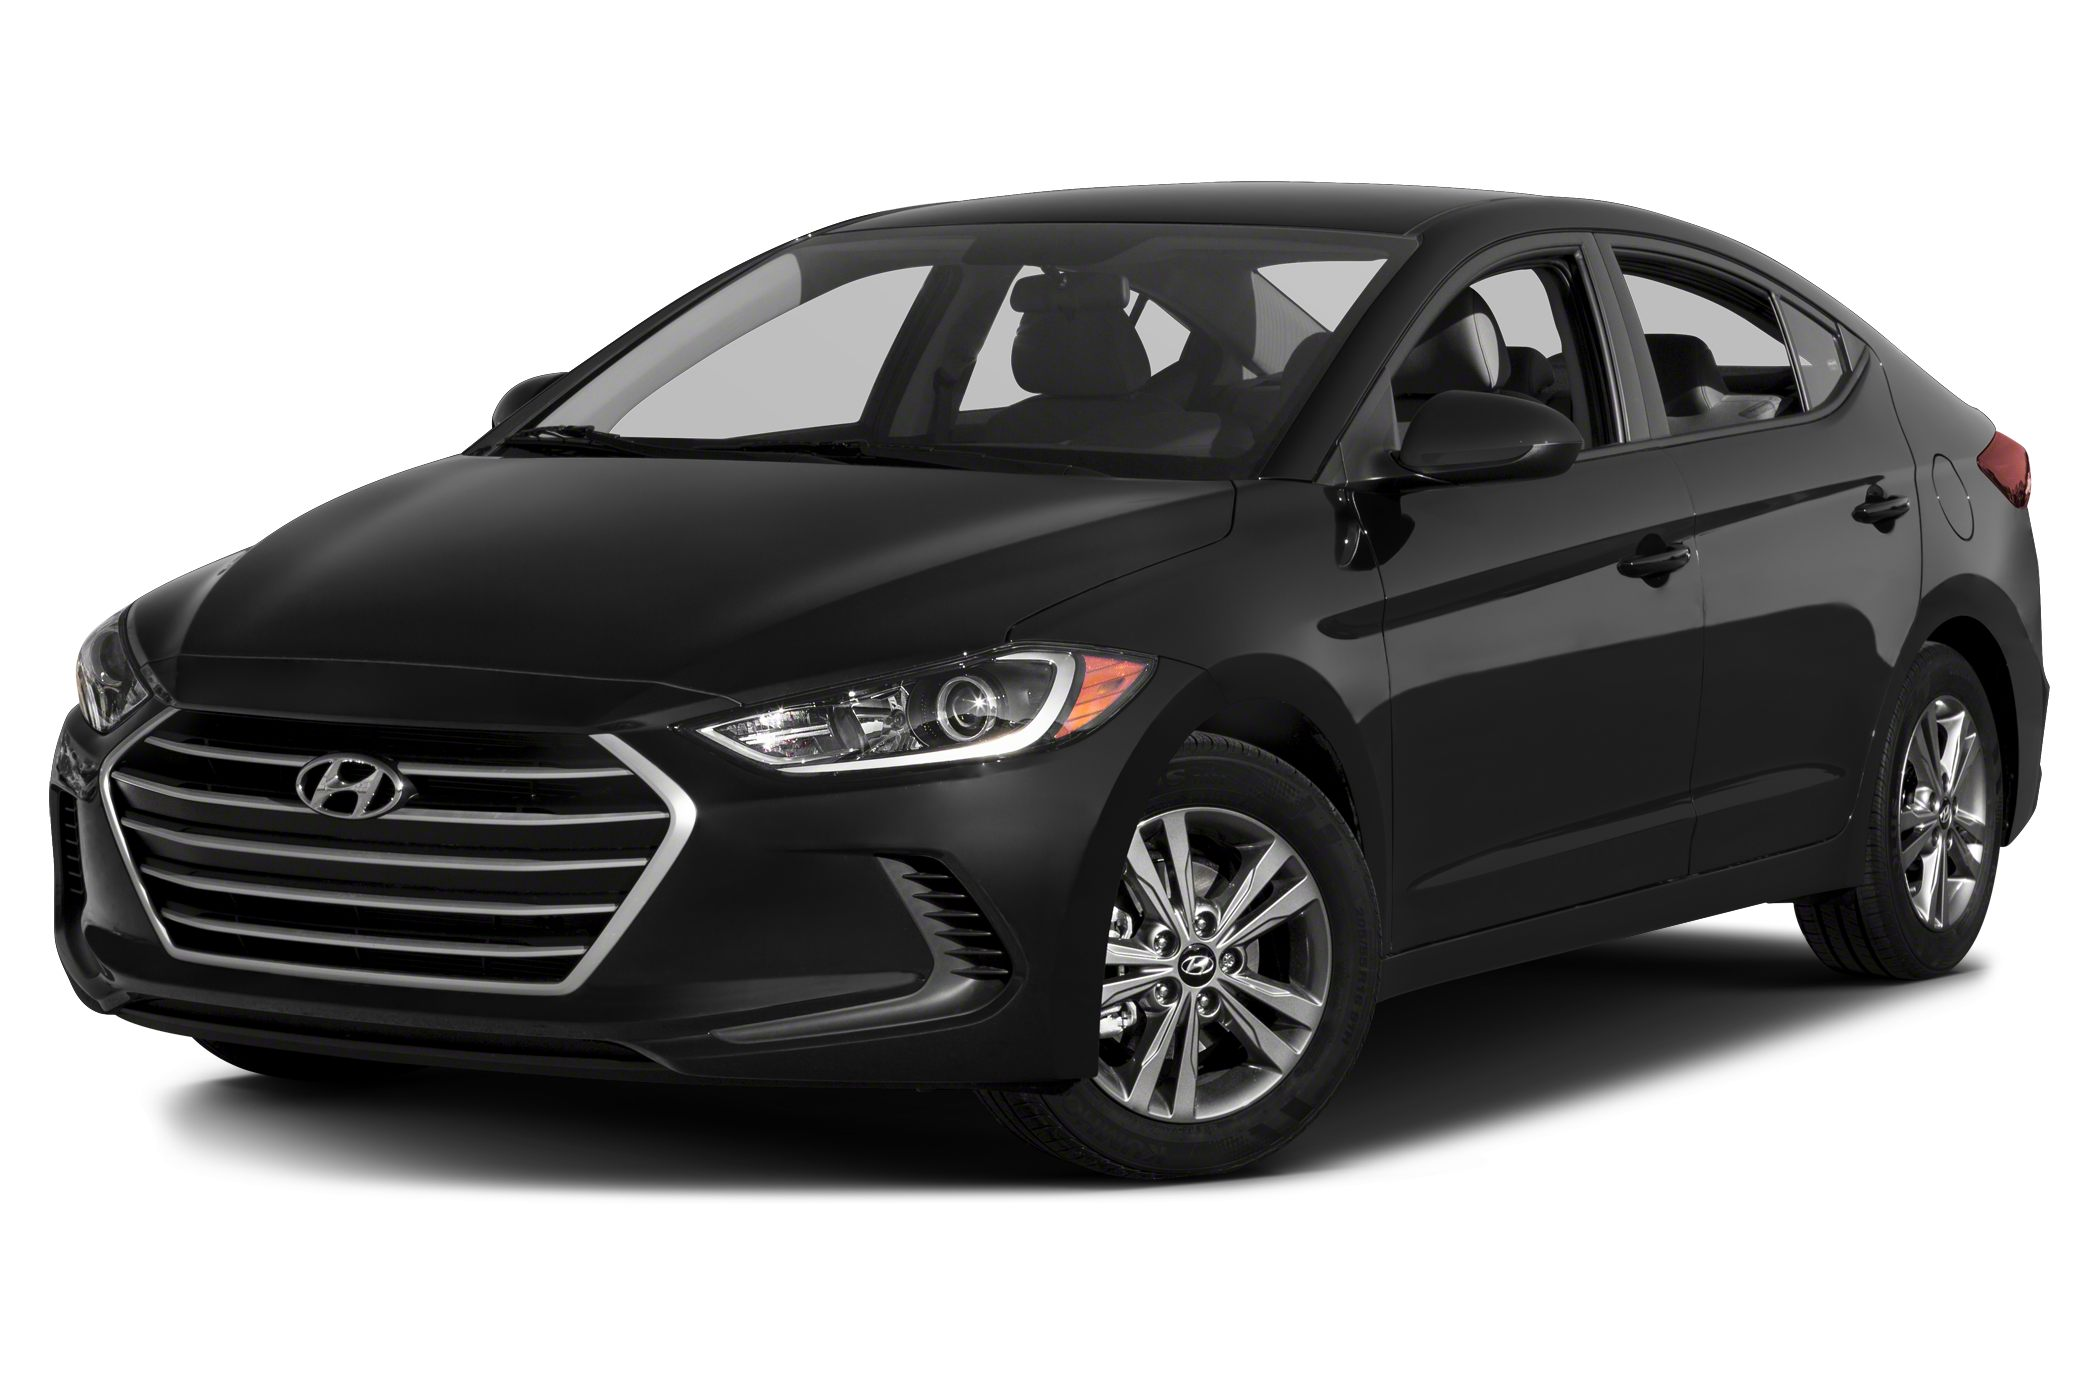 2018 Hyundai Elantra SEL 4dr Sedan Specs and Prices